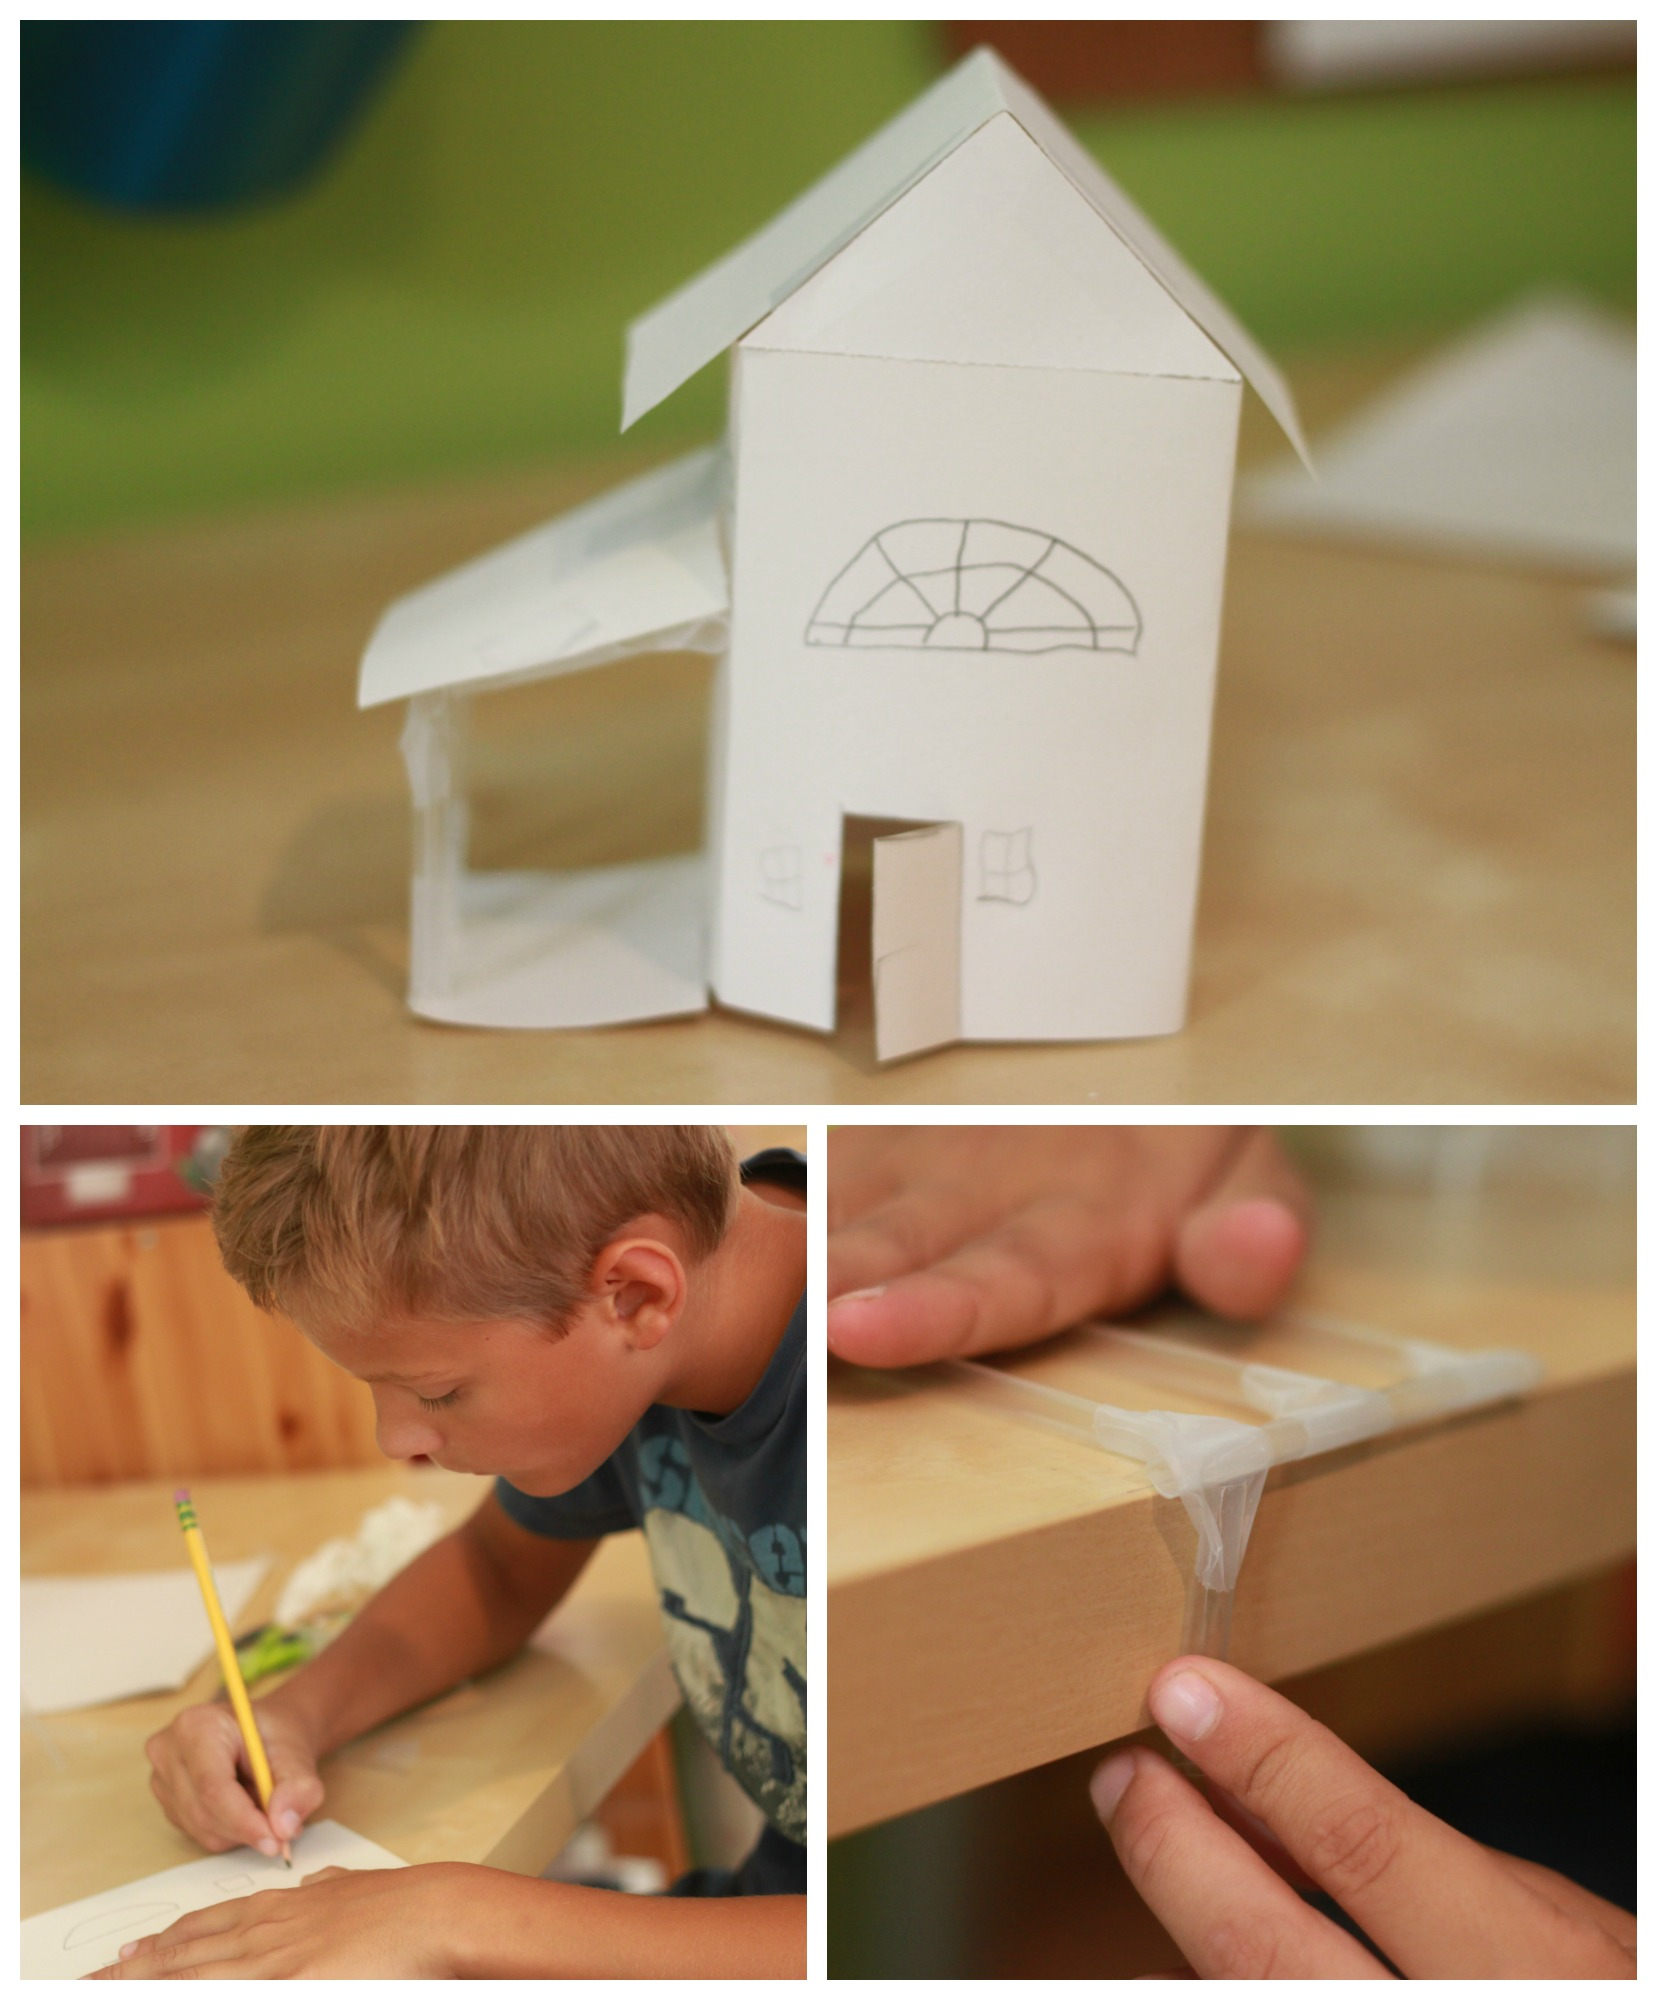 building-a-house-and-learning-about-roof-pitches